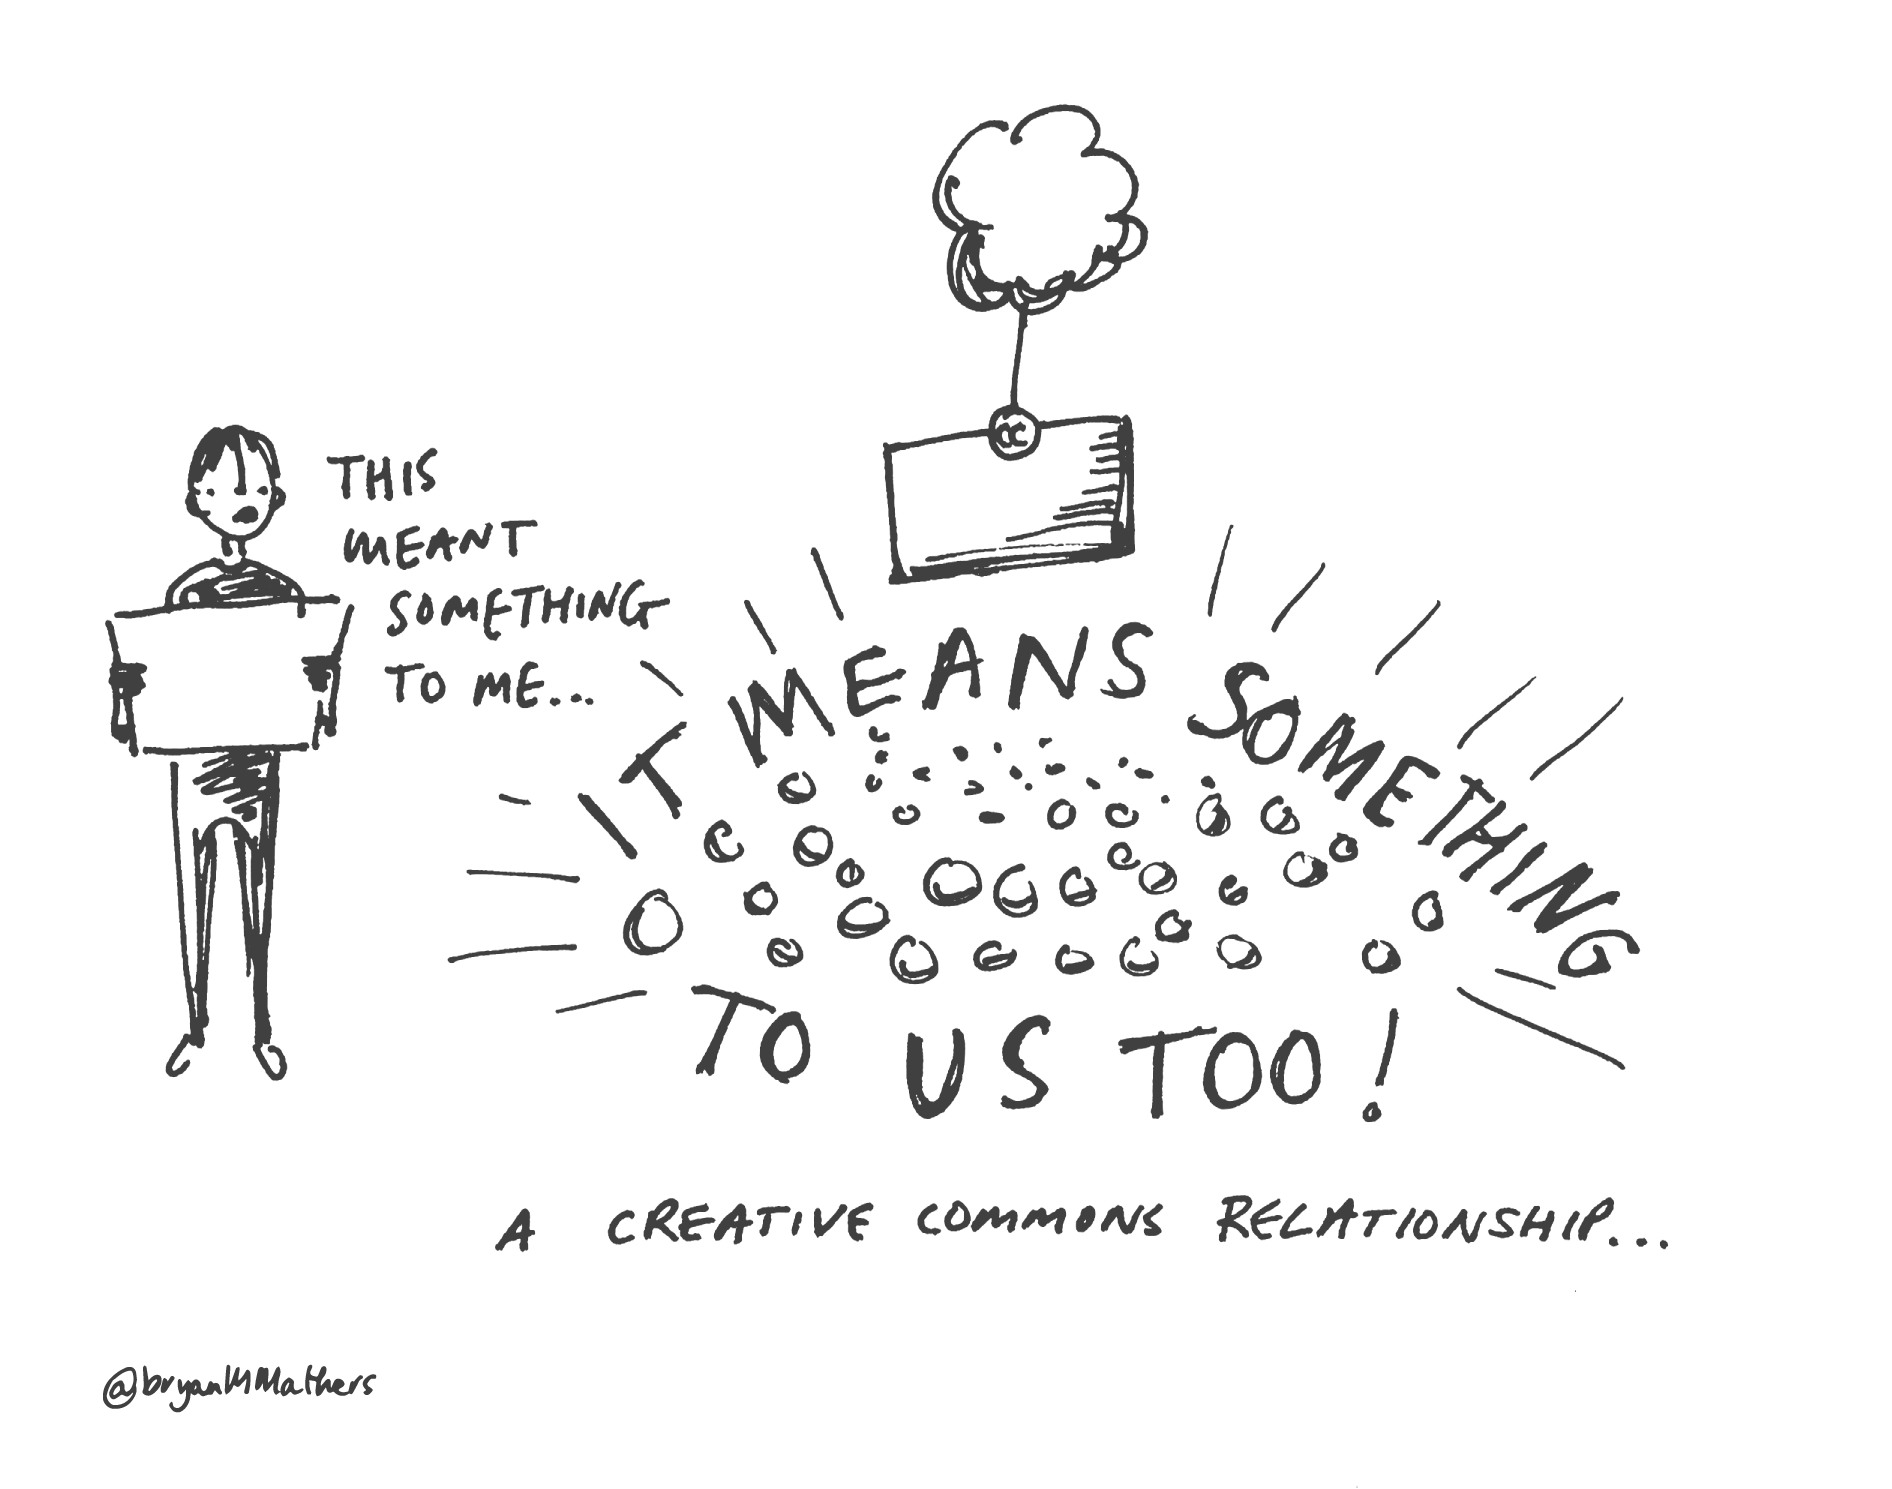 A Creative Commons relationship